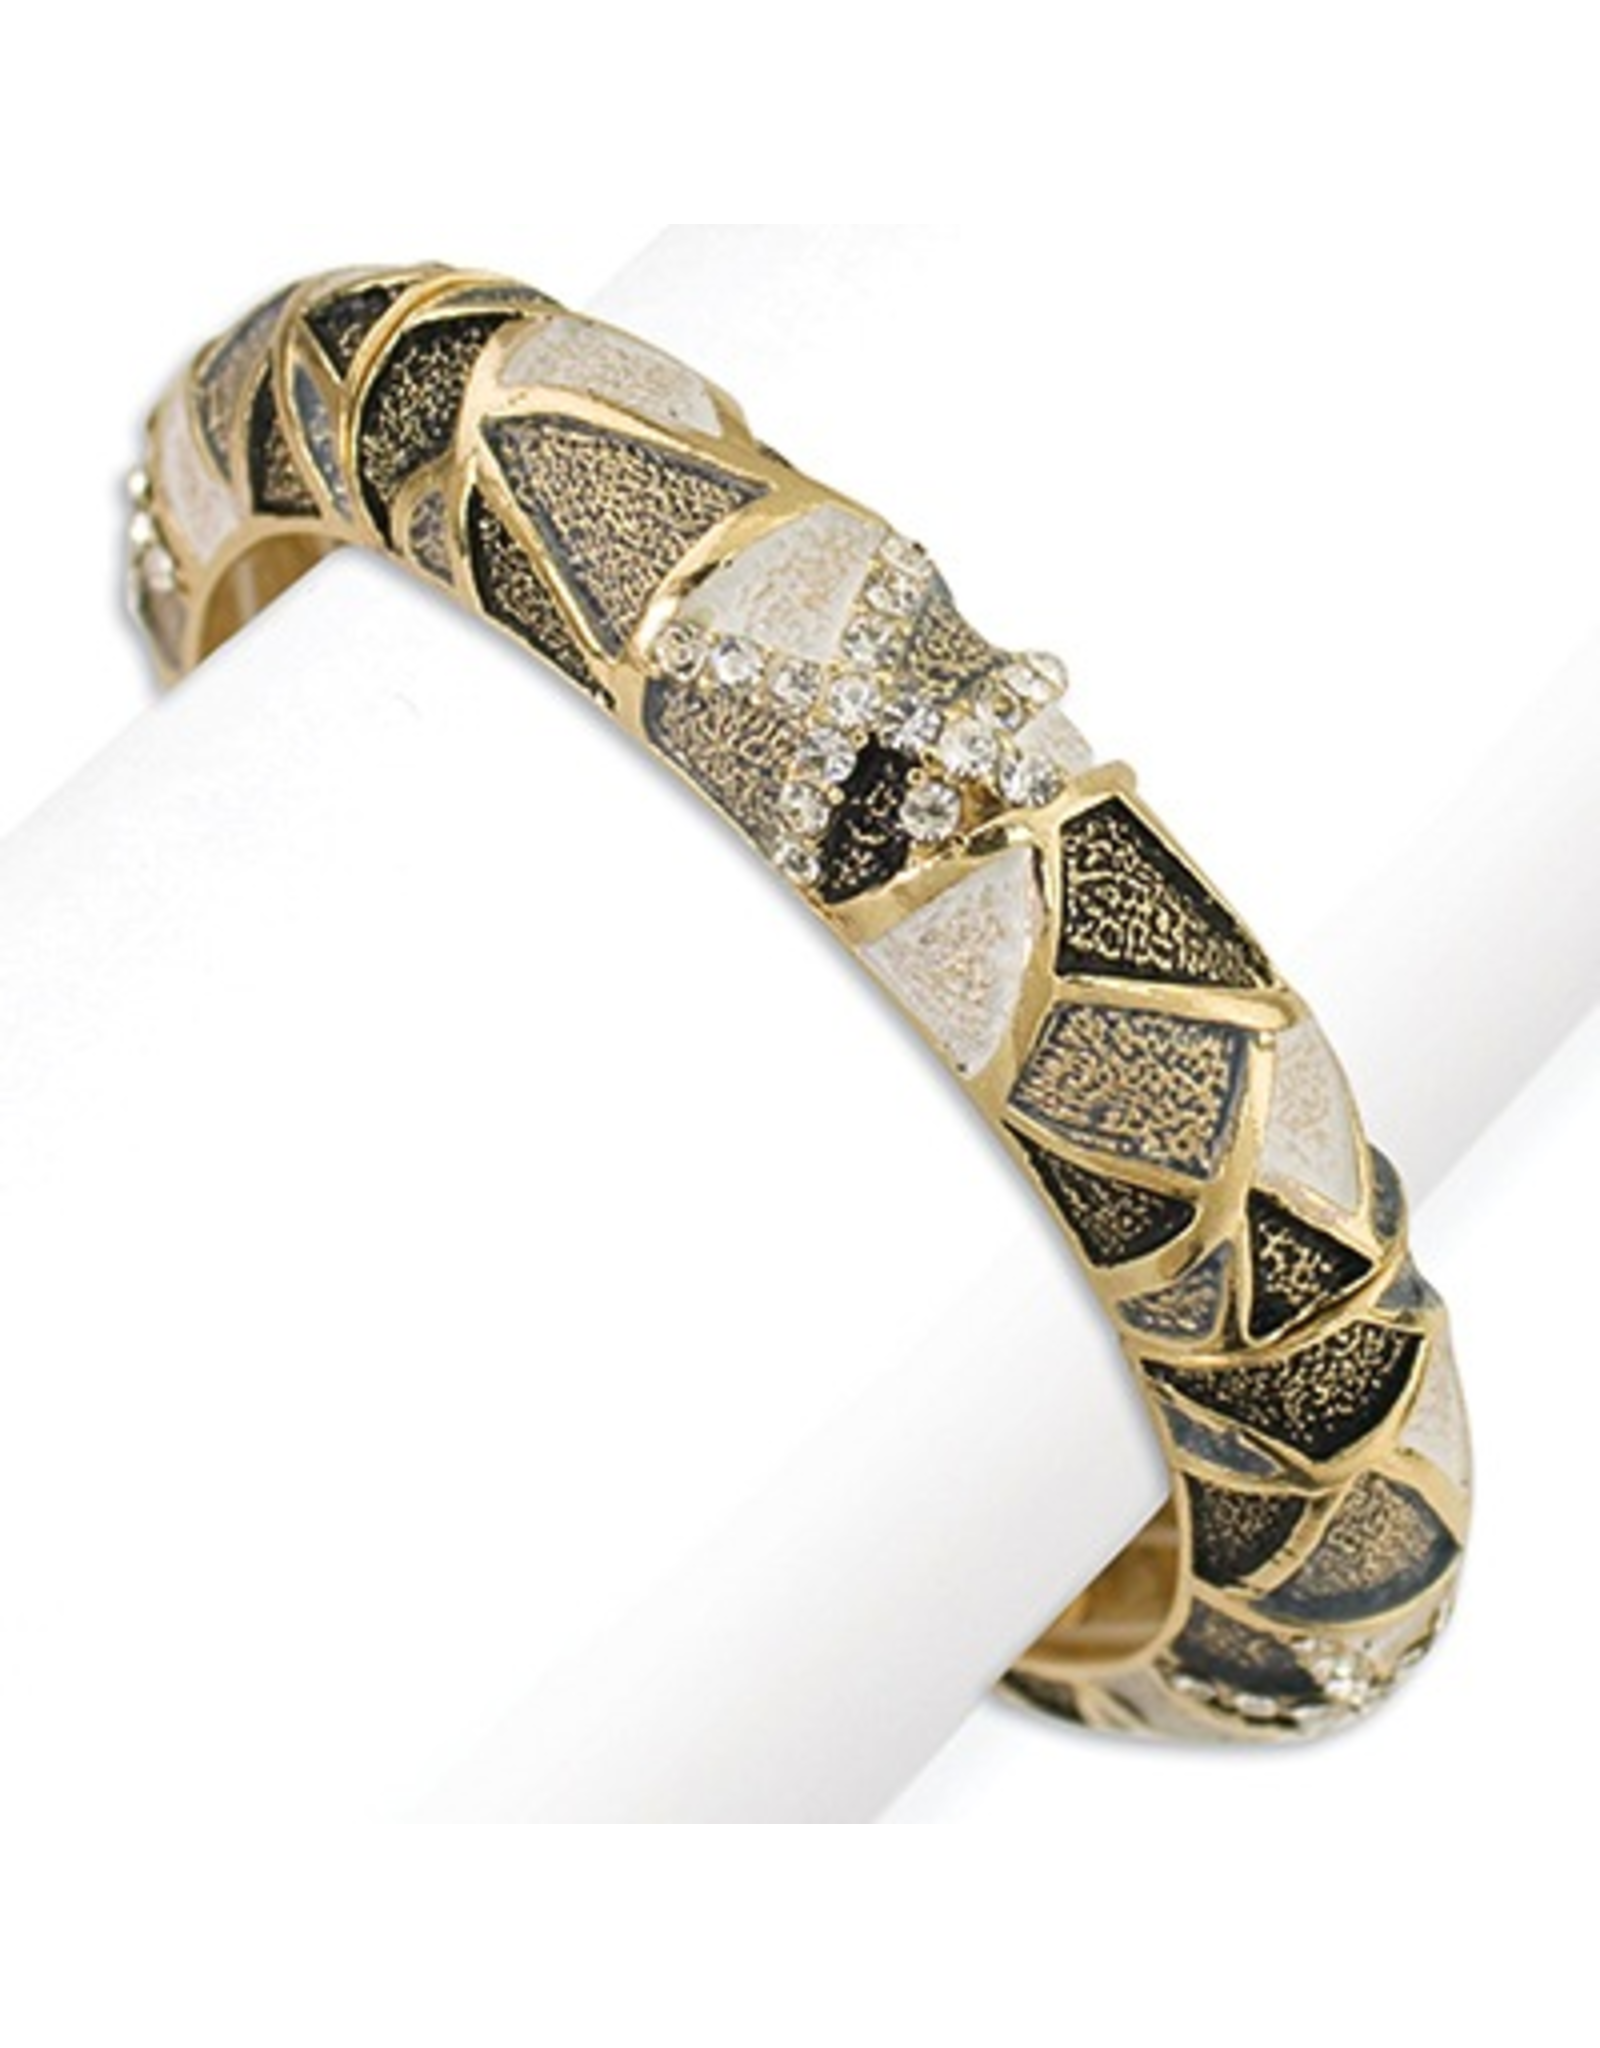 Periwinkle Bracelet Contemporary Gold and Crystals Bracelet - Stretch